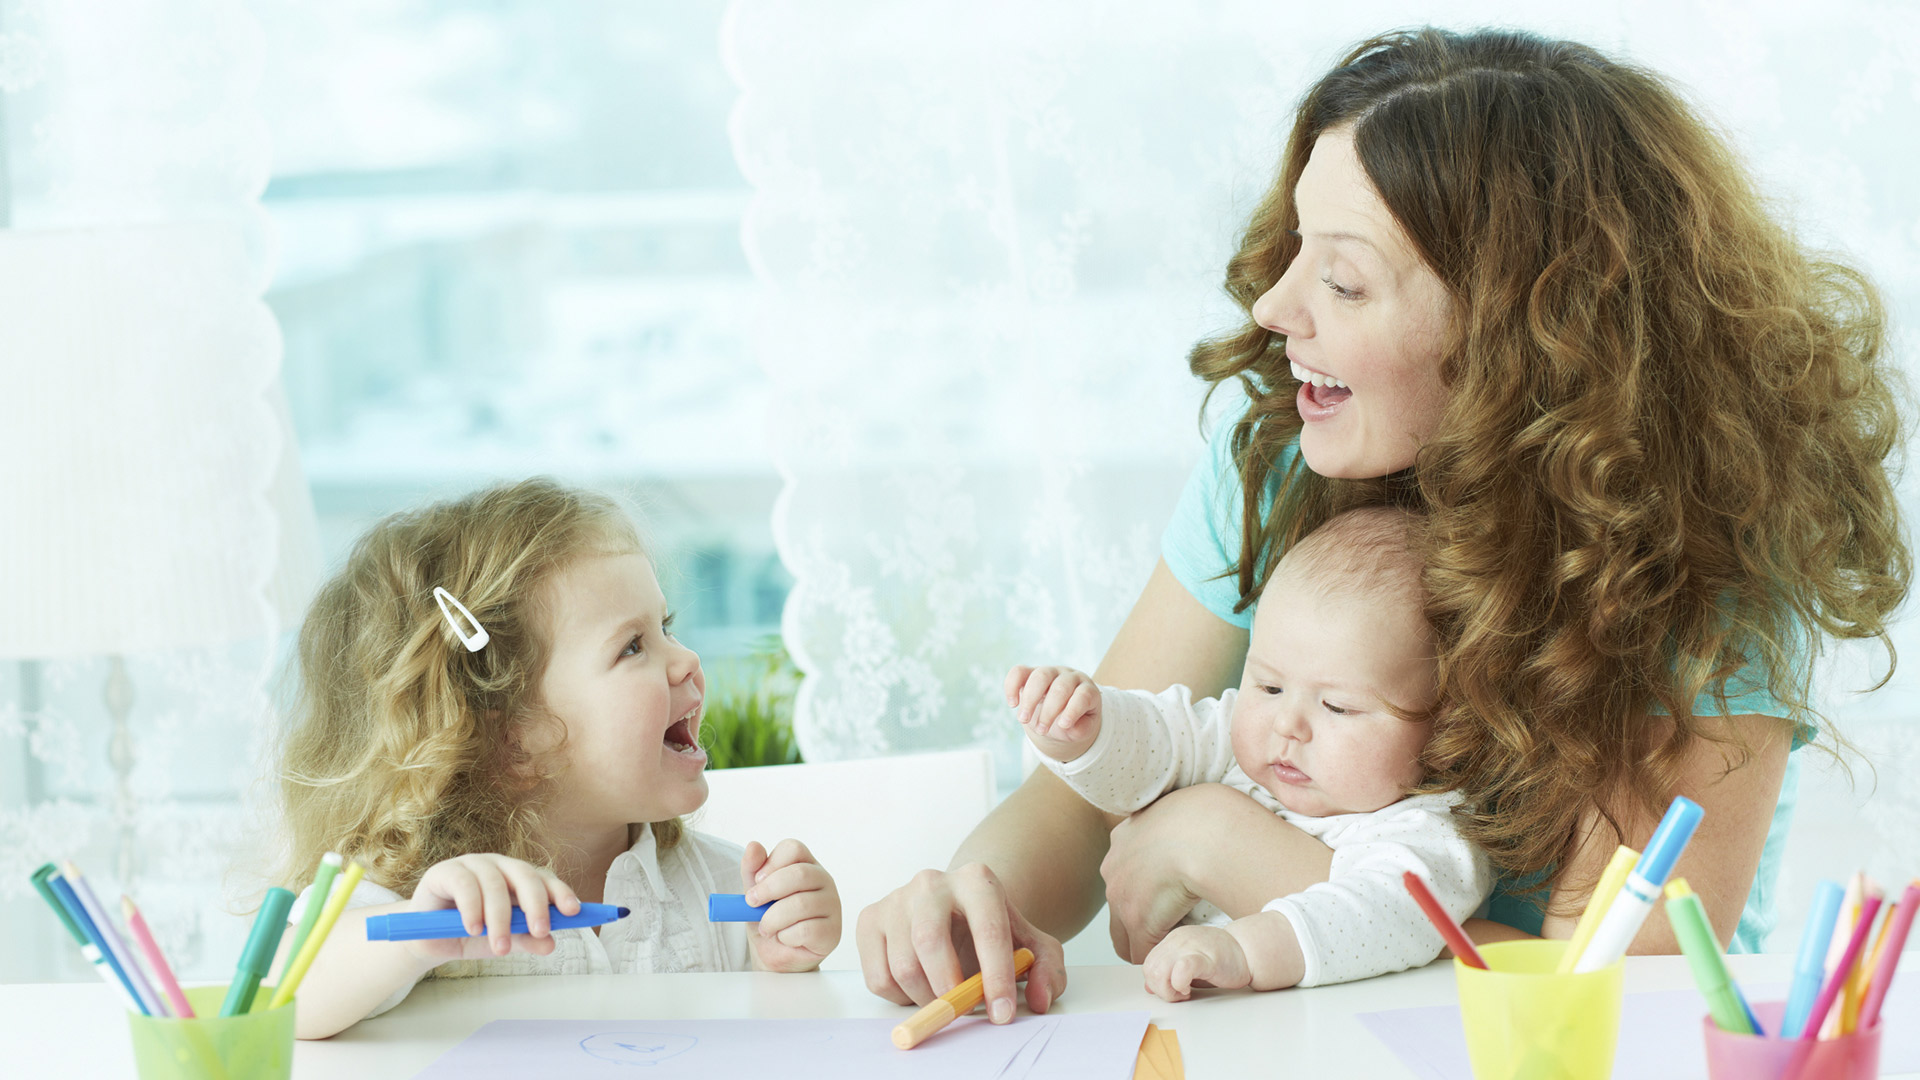 Babysitter with children | PregnancyAndBaby.com